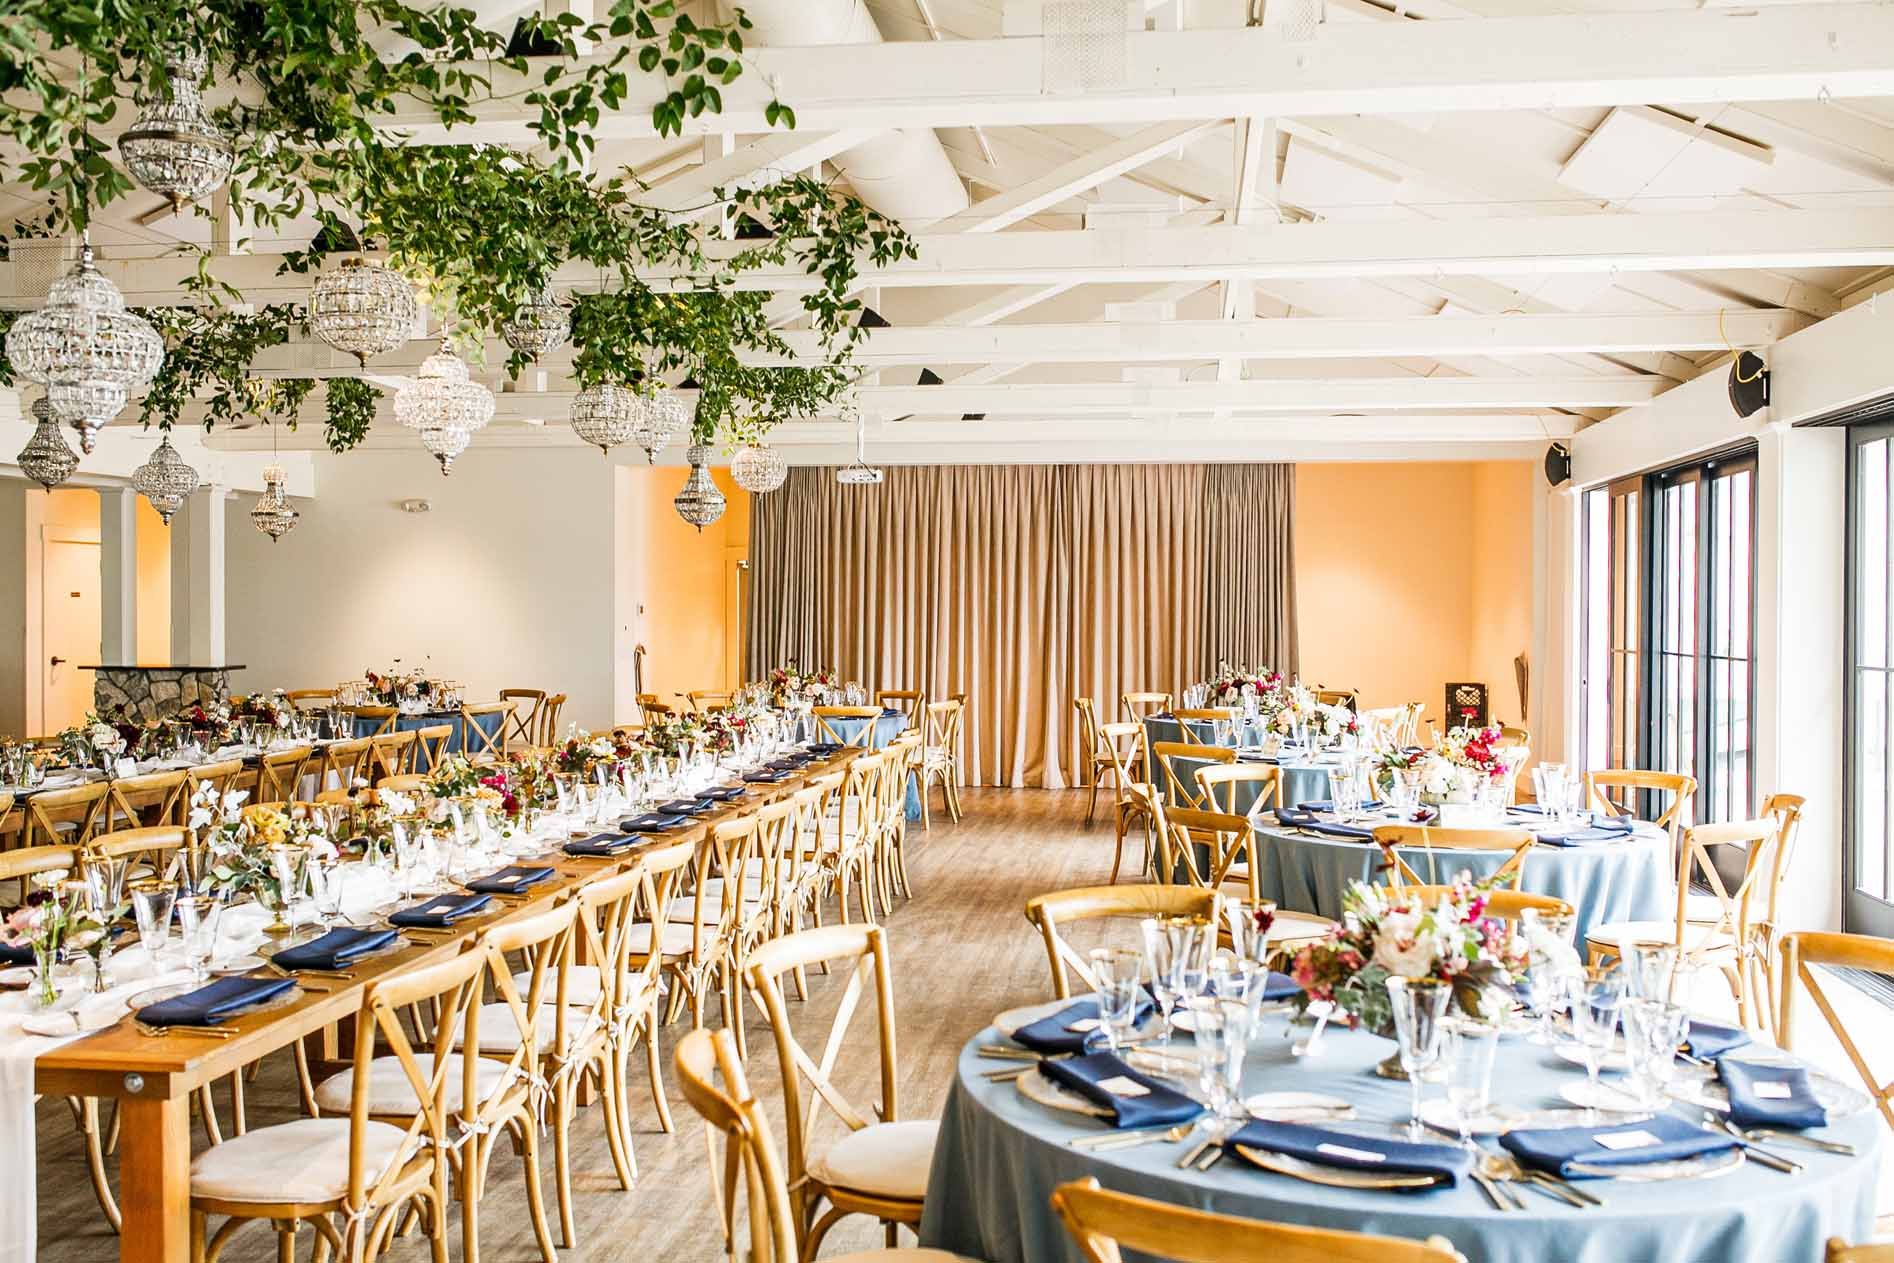 Wedding reception at Roche Harbor ballroom with French blue linens and Vineyard chairs